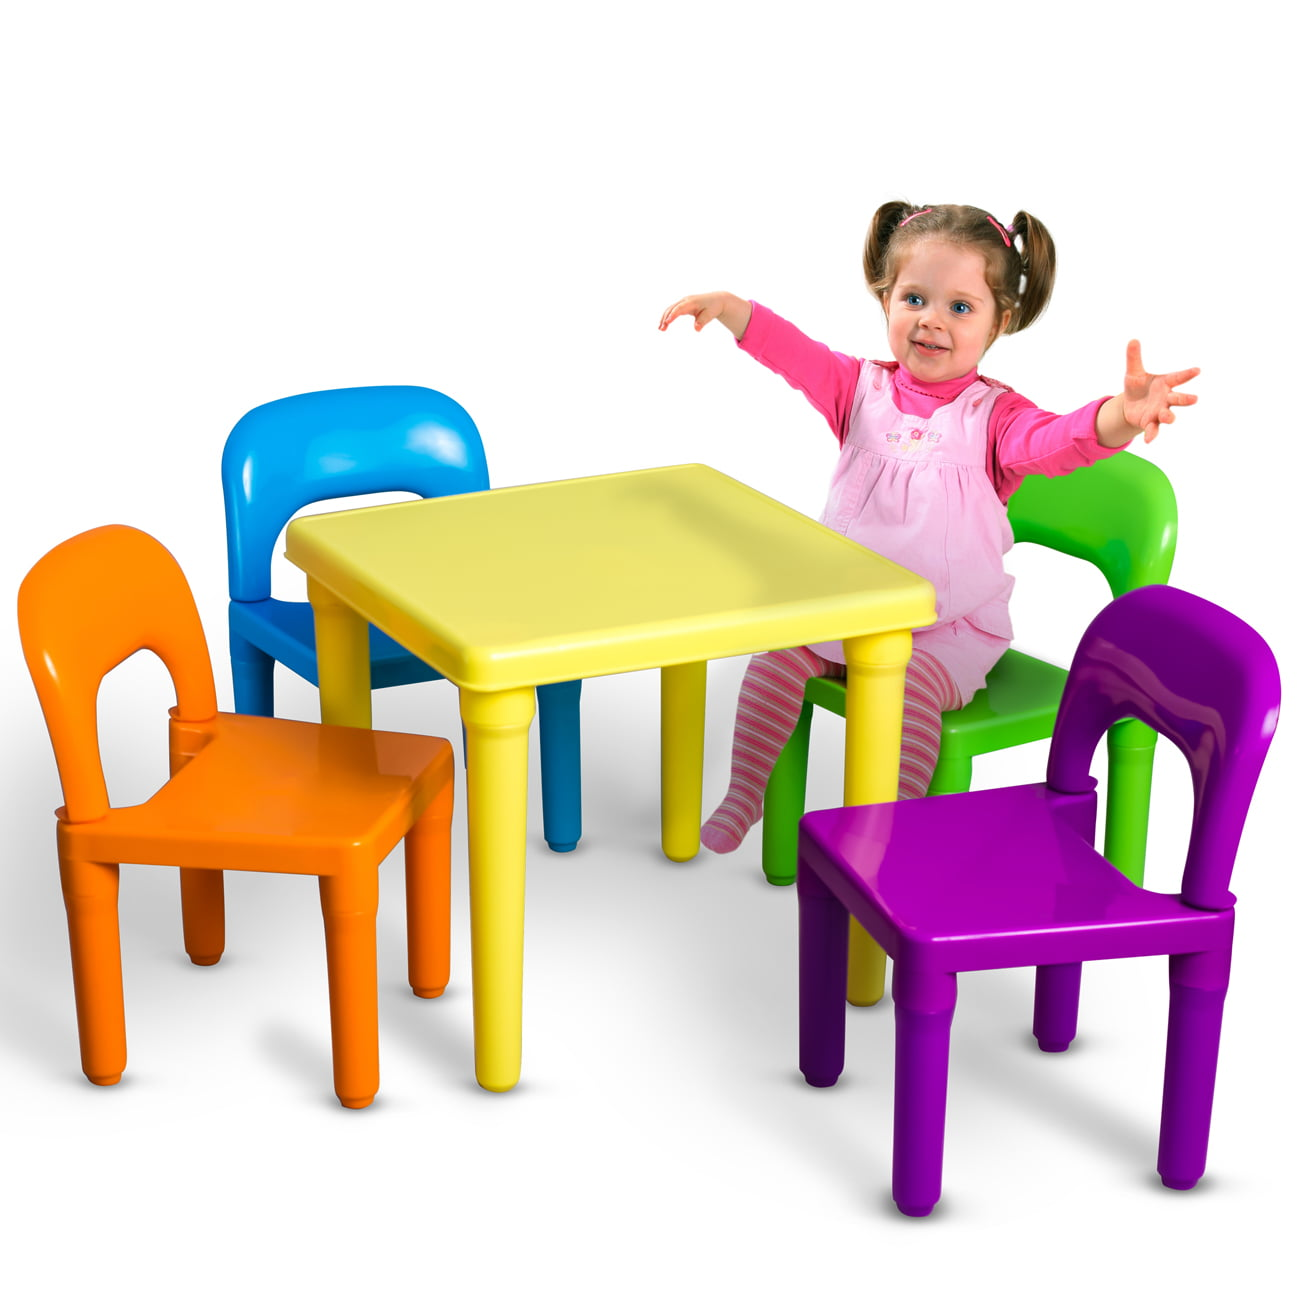 OxGord Kids Table And Chairs Play Set For Toddler Child Toy Activity Furniture Indoor Or Outdoor - Walmart.com  sc 1 st  Walmart.com & OxGord Kids Table And Chairs Play Set For Toddler Child Toy Activity ...